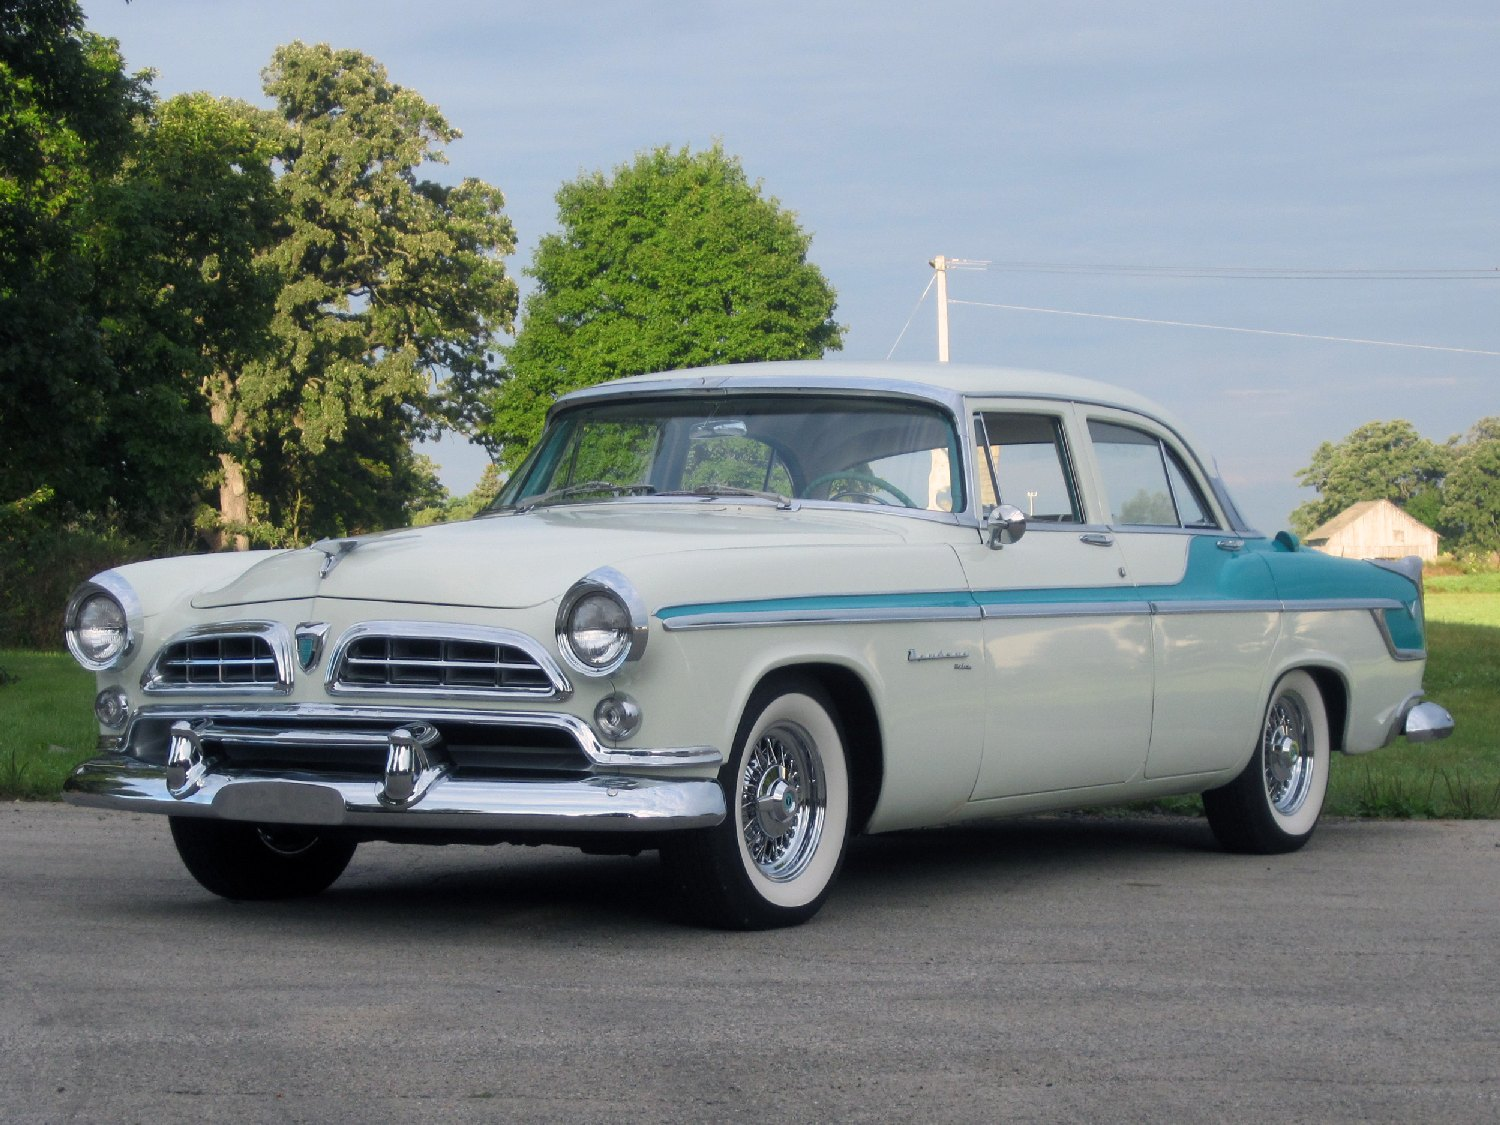 All American Classic Cars: 1955 Chrysler Windsor DeLuxe 4